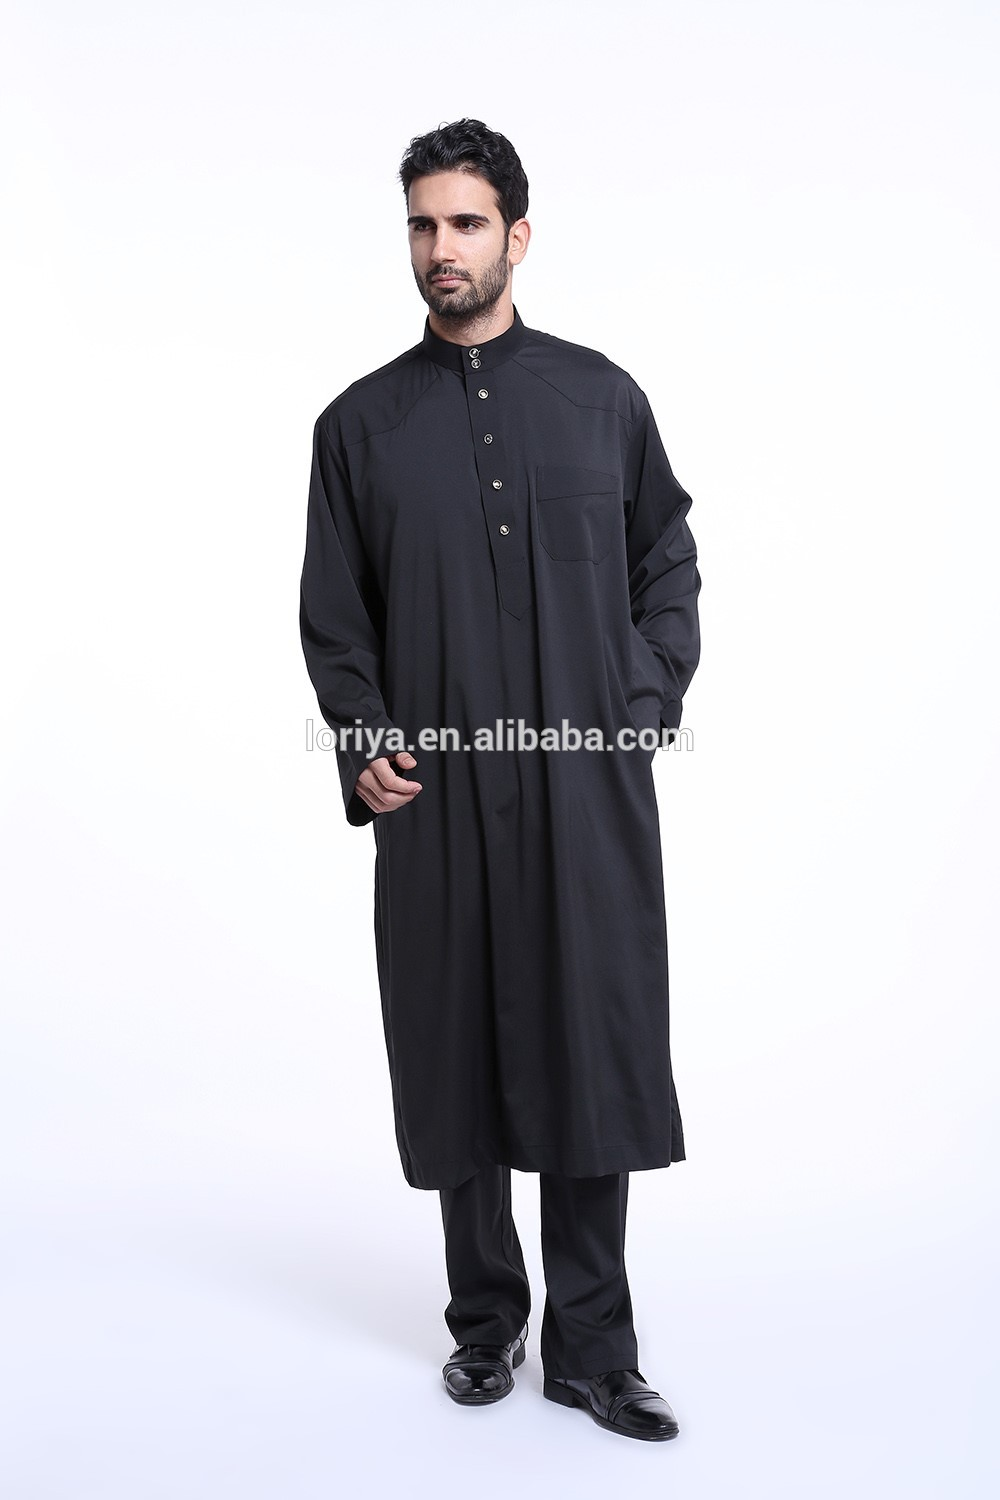 Muslim men dress abaya in dubai arab islamic men abaya